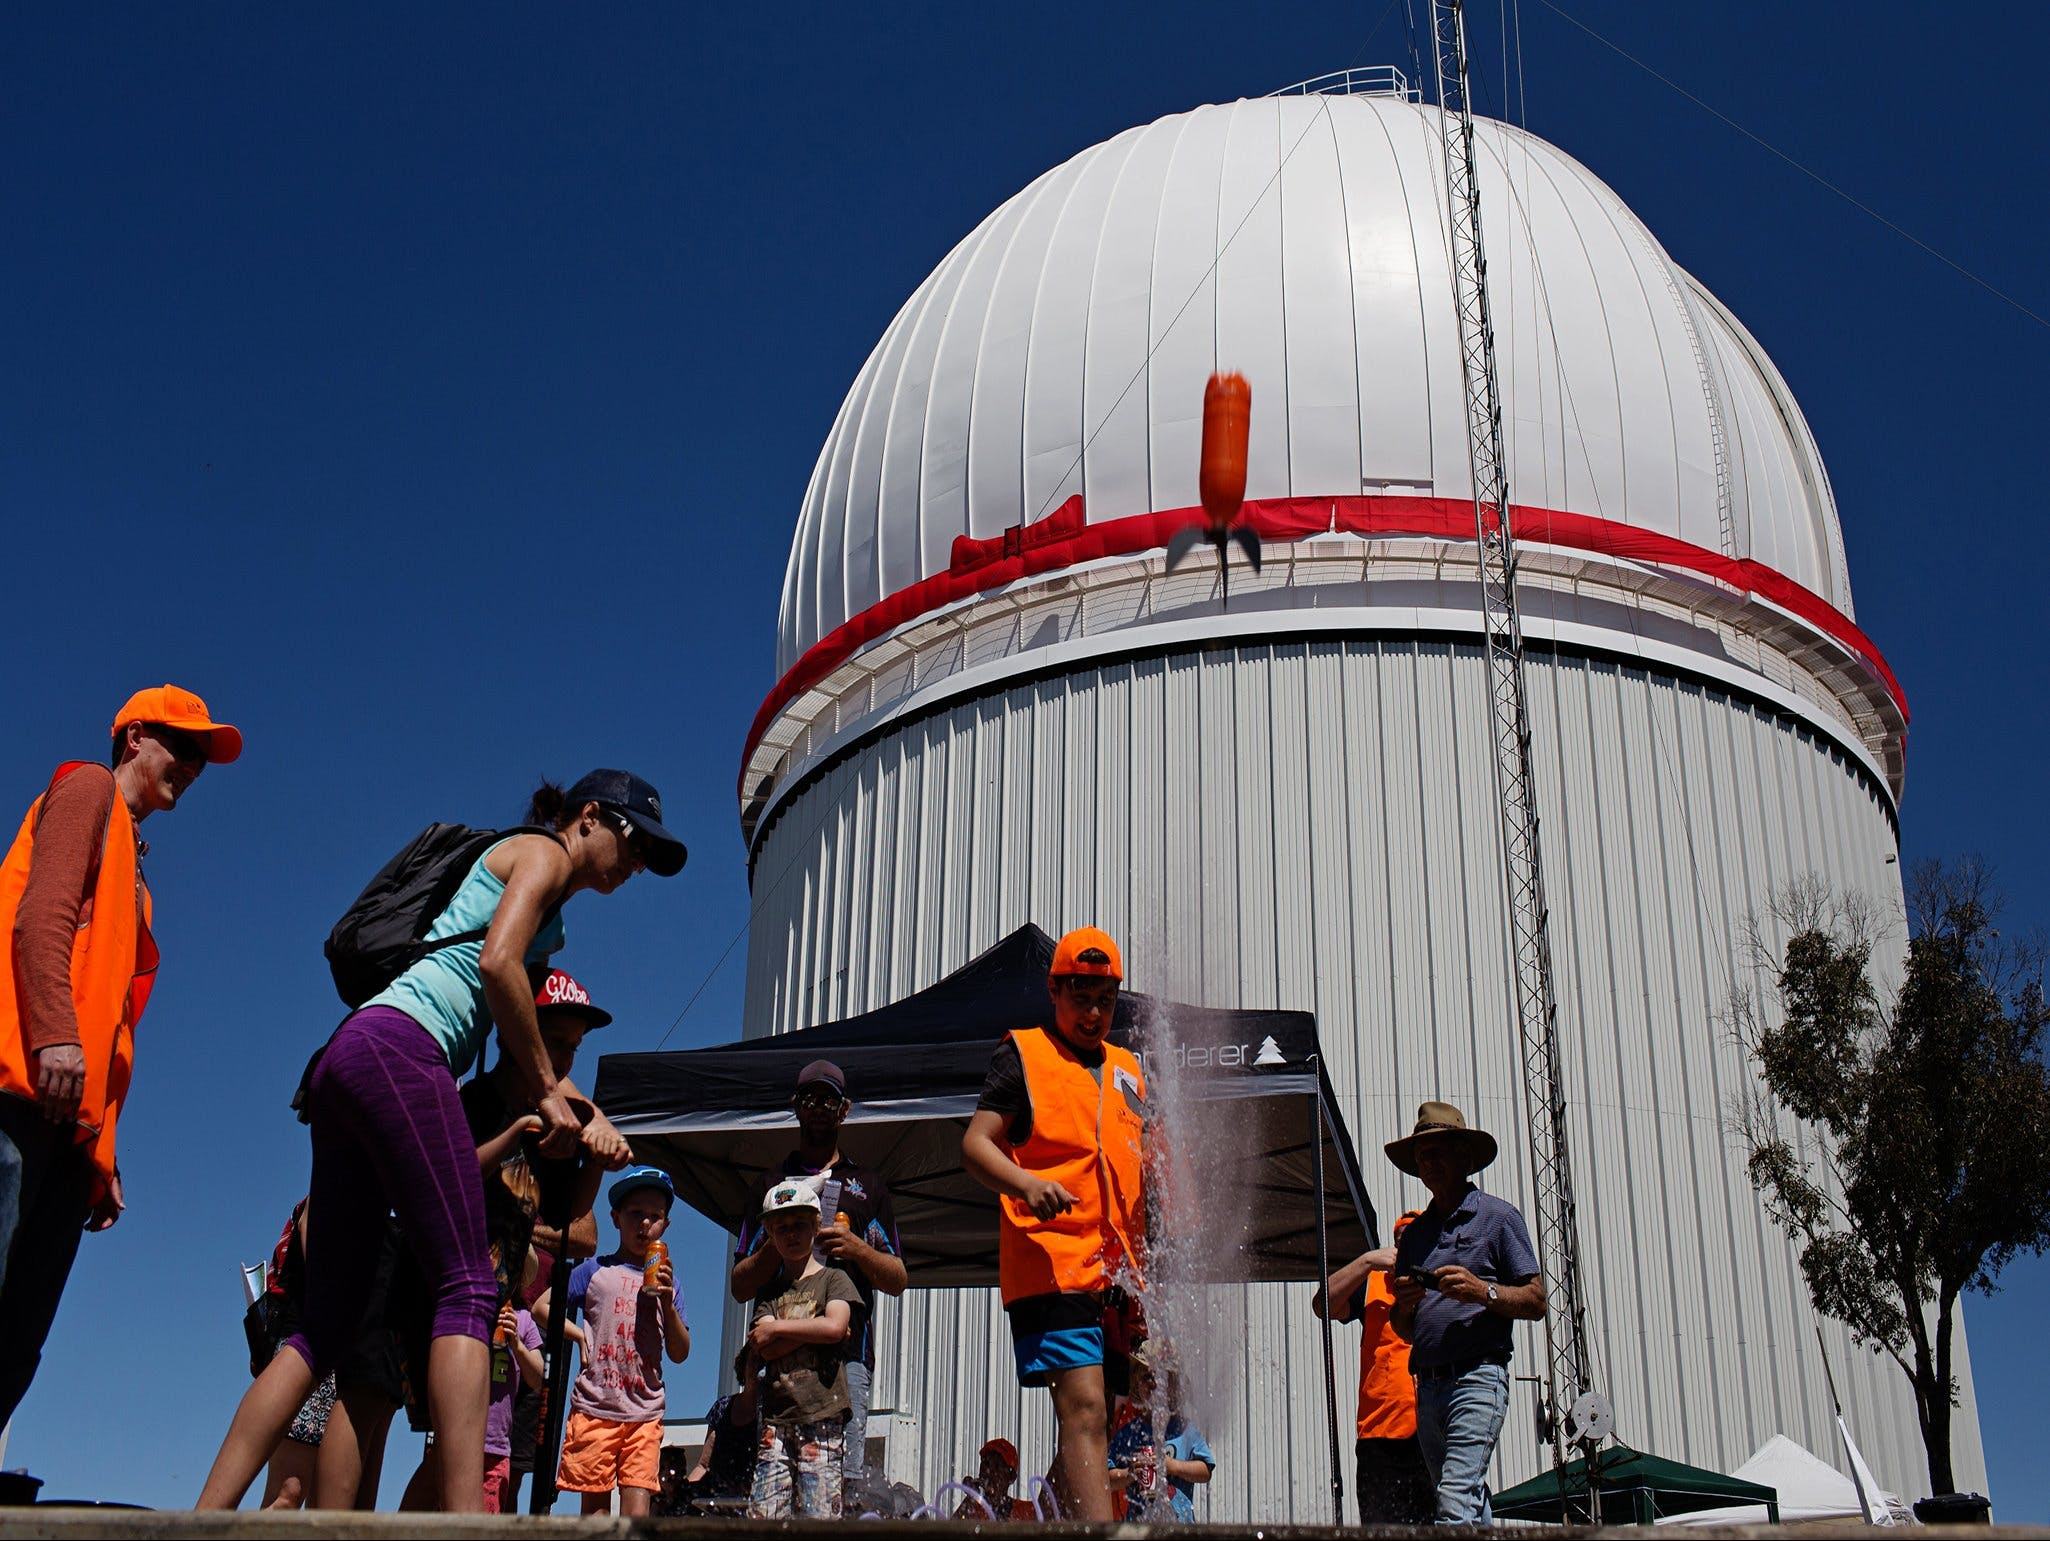 Siding Spring Observatory Open Day - Cancelled due to COVID 19 - Sunshine Coast Tourism